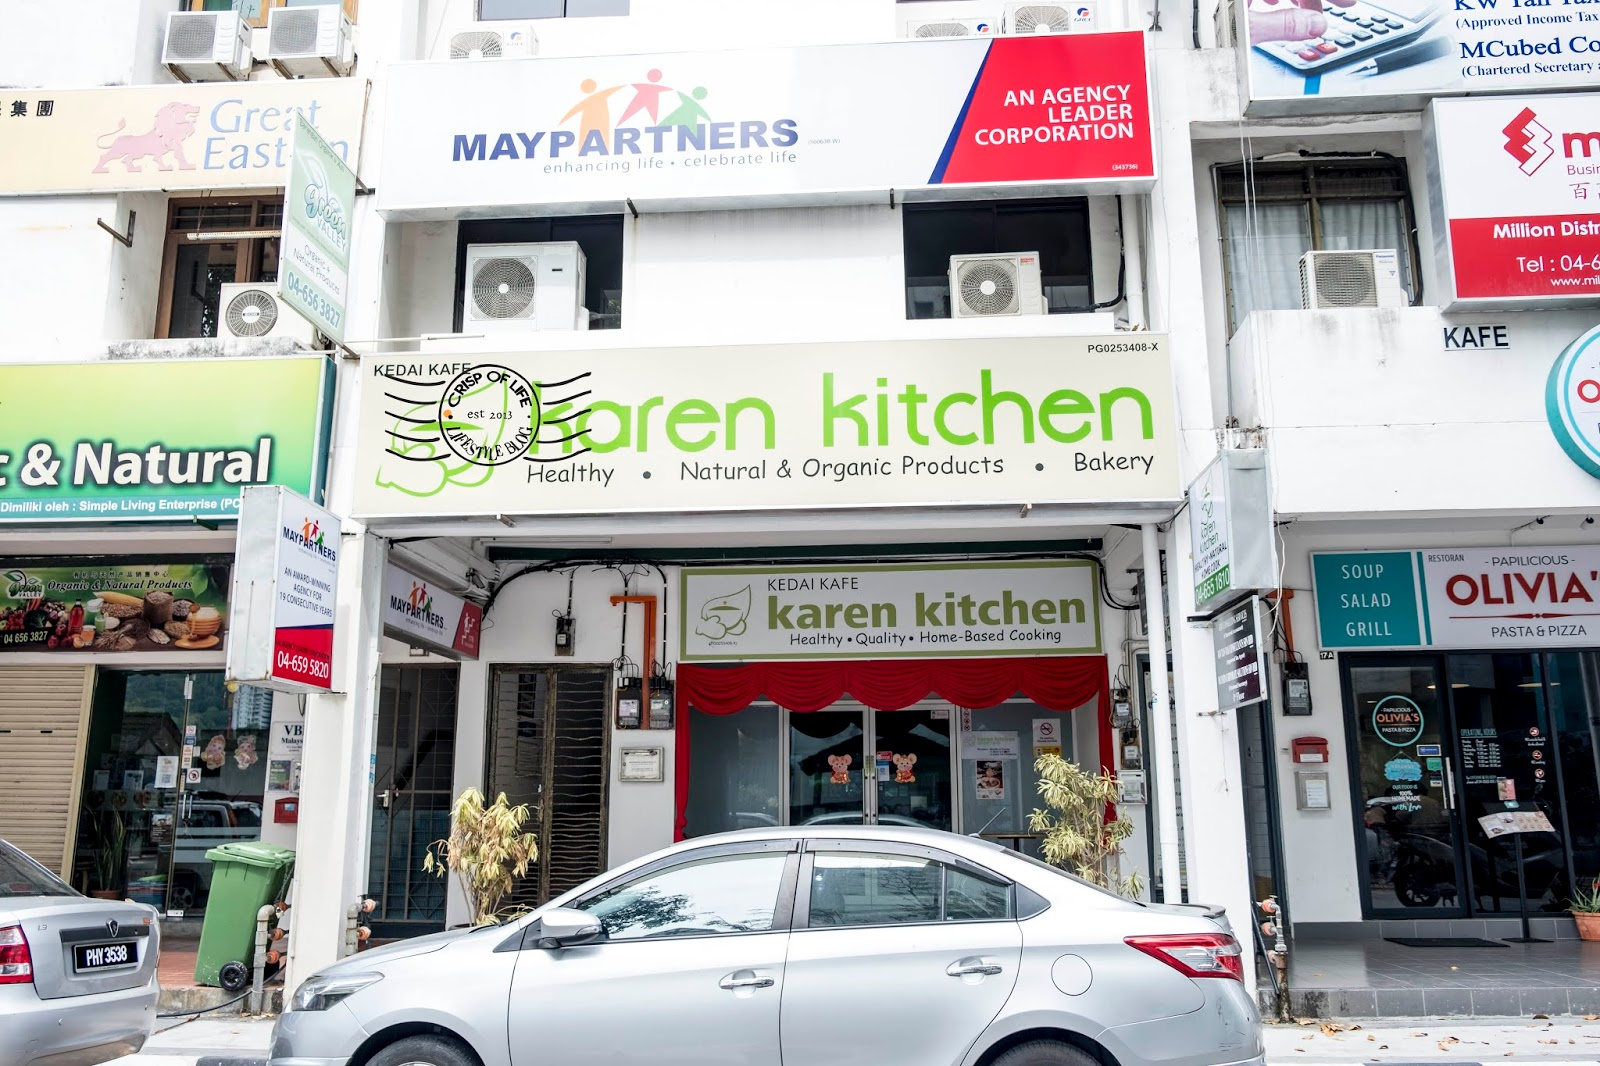 Healthy and Homebase Cooking @ Karen Kitchen, Jelutong